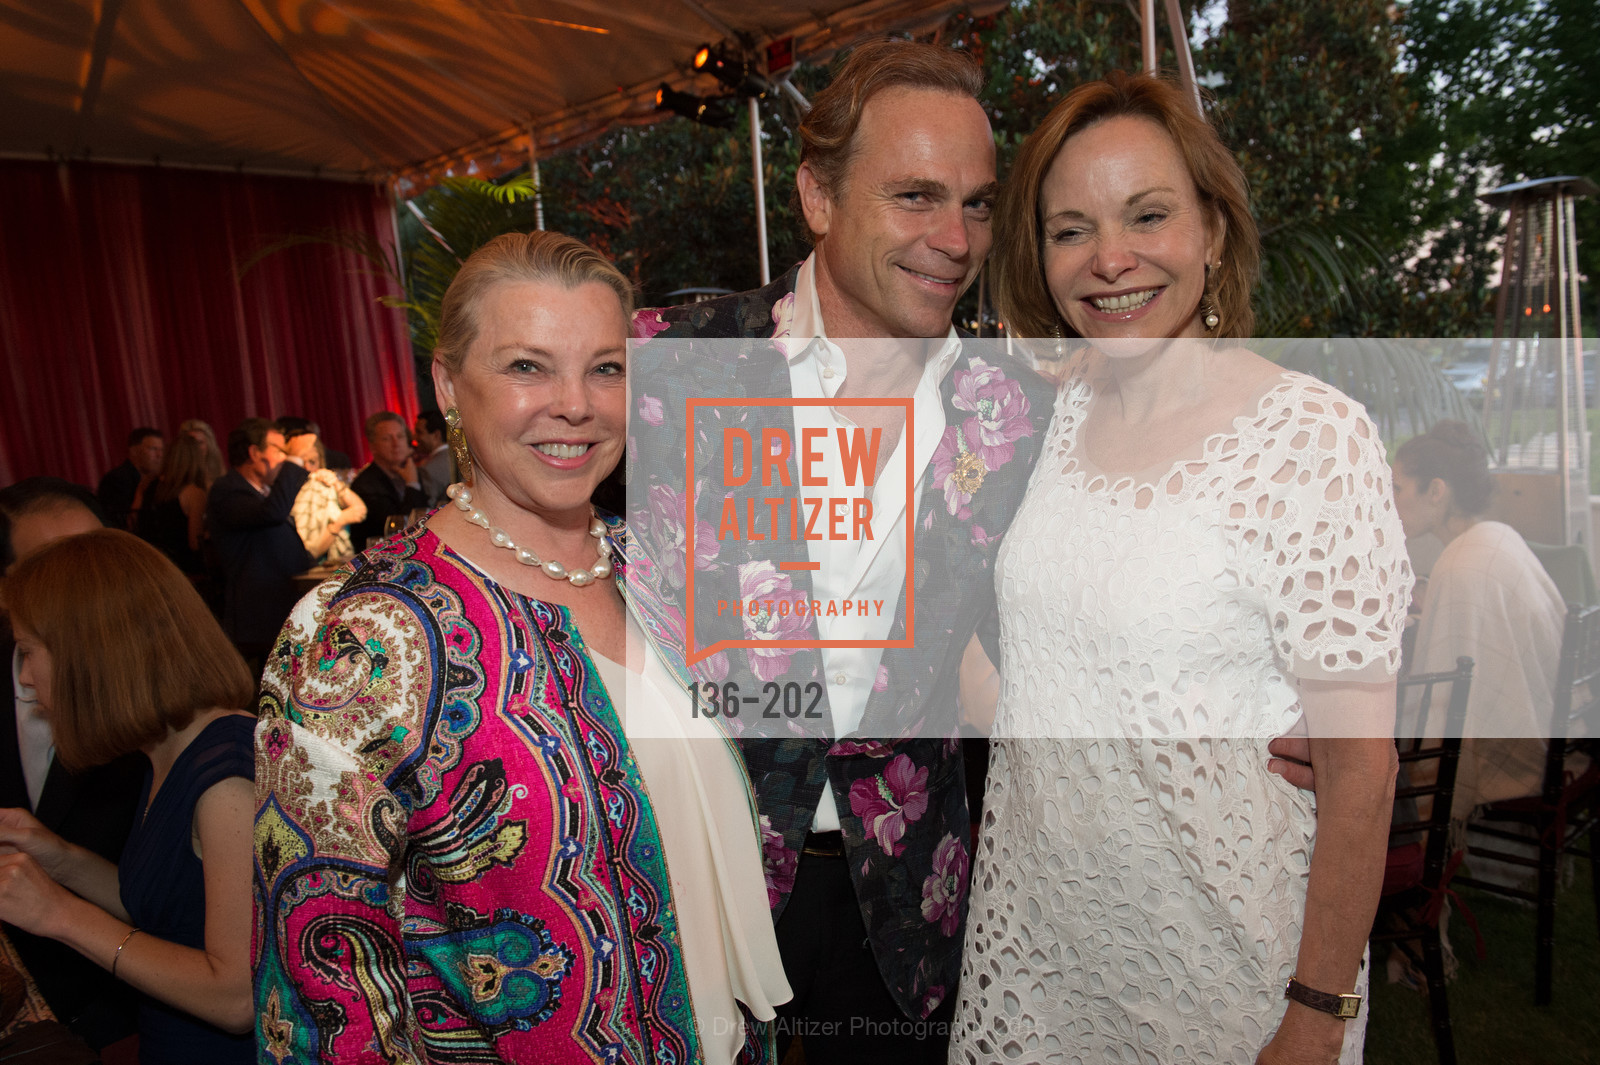 Jeanne Lawrence, Jean-Charles Boisset, Jan Zakin, Festival del Sole Patron Dinner at Darioush Winery, Darioush Winery. 4240 Silverado Trail, July 24th, 2015,Drew Altizer, Drew Altizer Photography, full-service event agency, private events, San Francisco photographer, photographer California